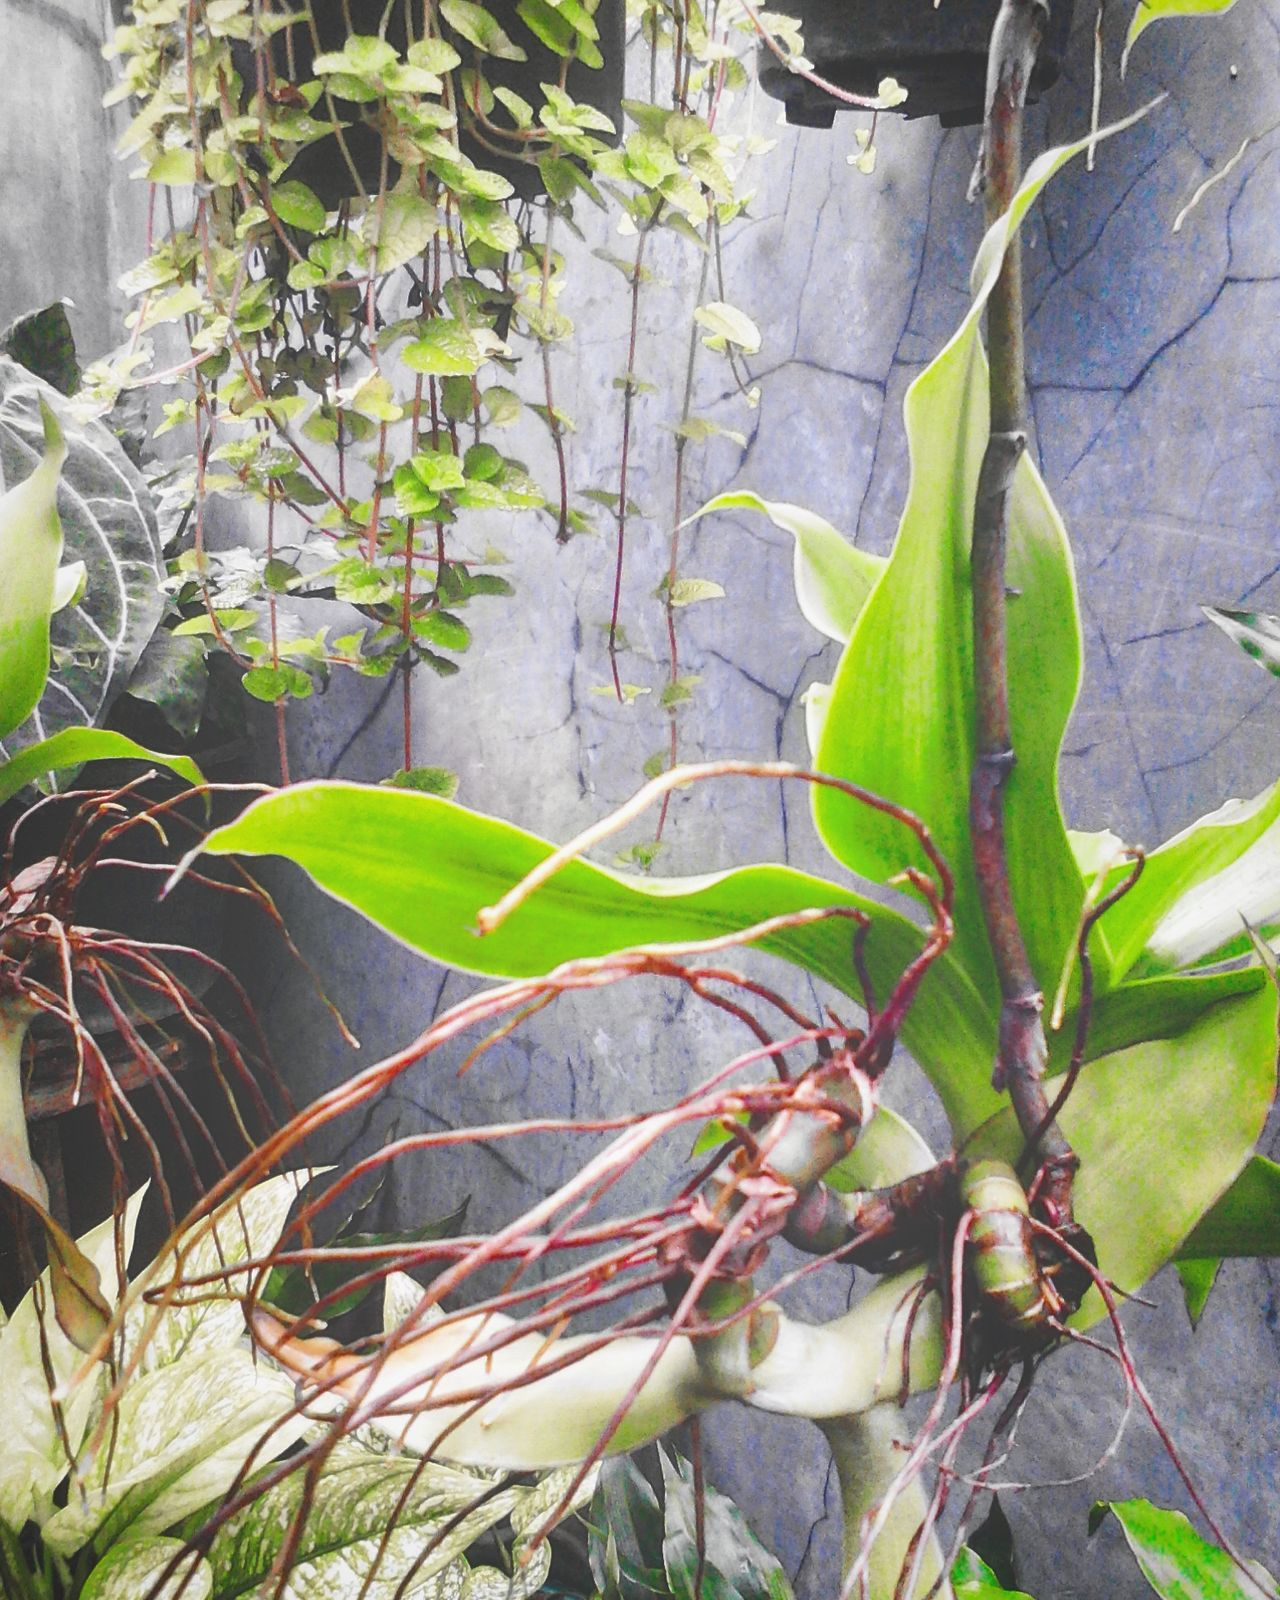 Leaf Growth Plant Nature Green Color No People Outdoors Freshness Close-up Beauty In Nature Day Photosynthesis